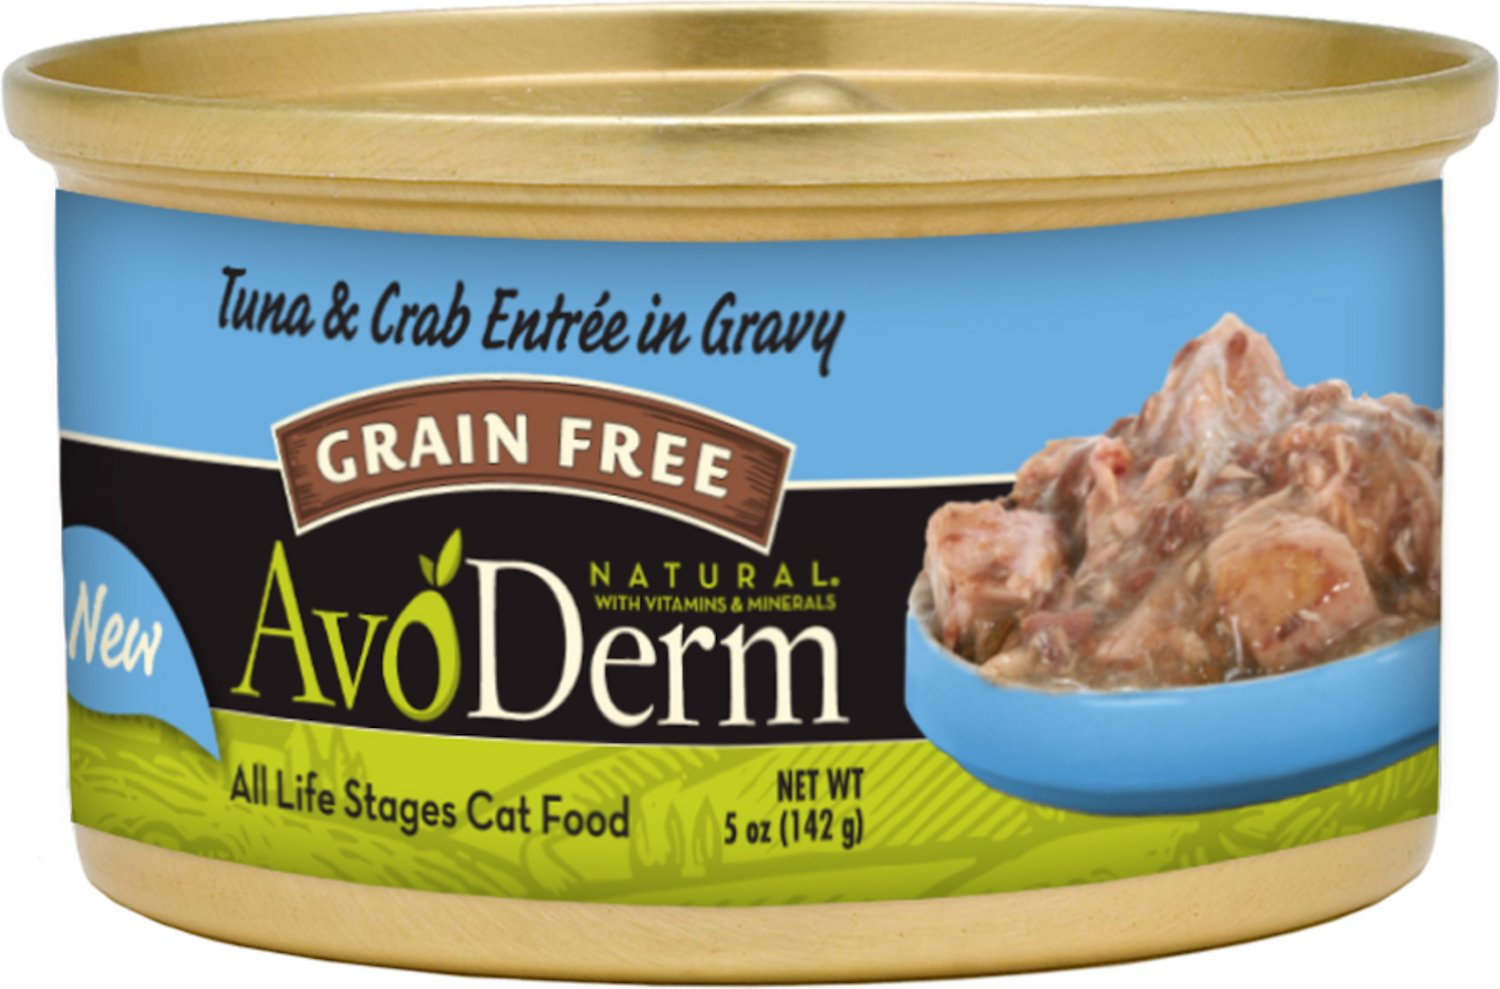 AvoDerm Natural Grain-Free Tuna & Crab Entree in Gravy Canned Cat Food